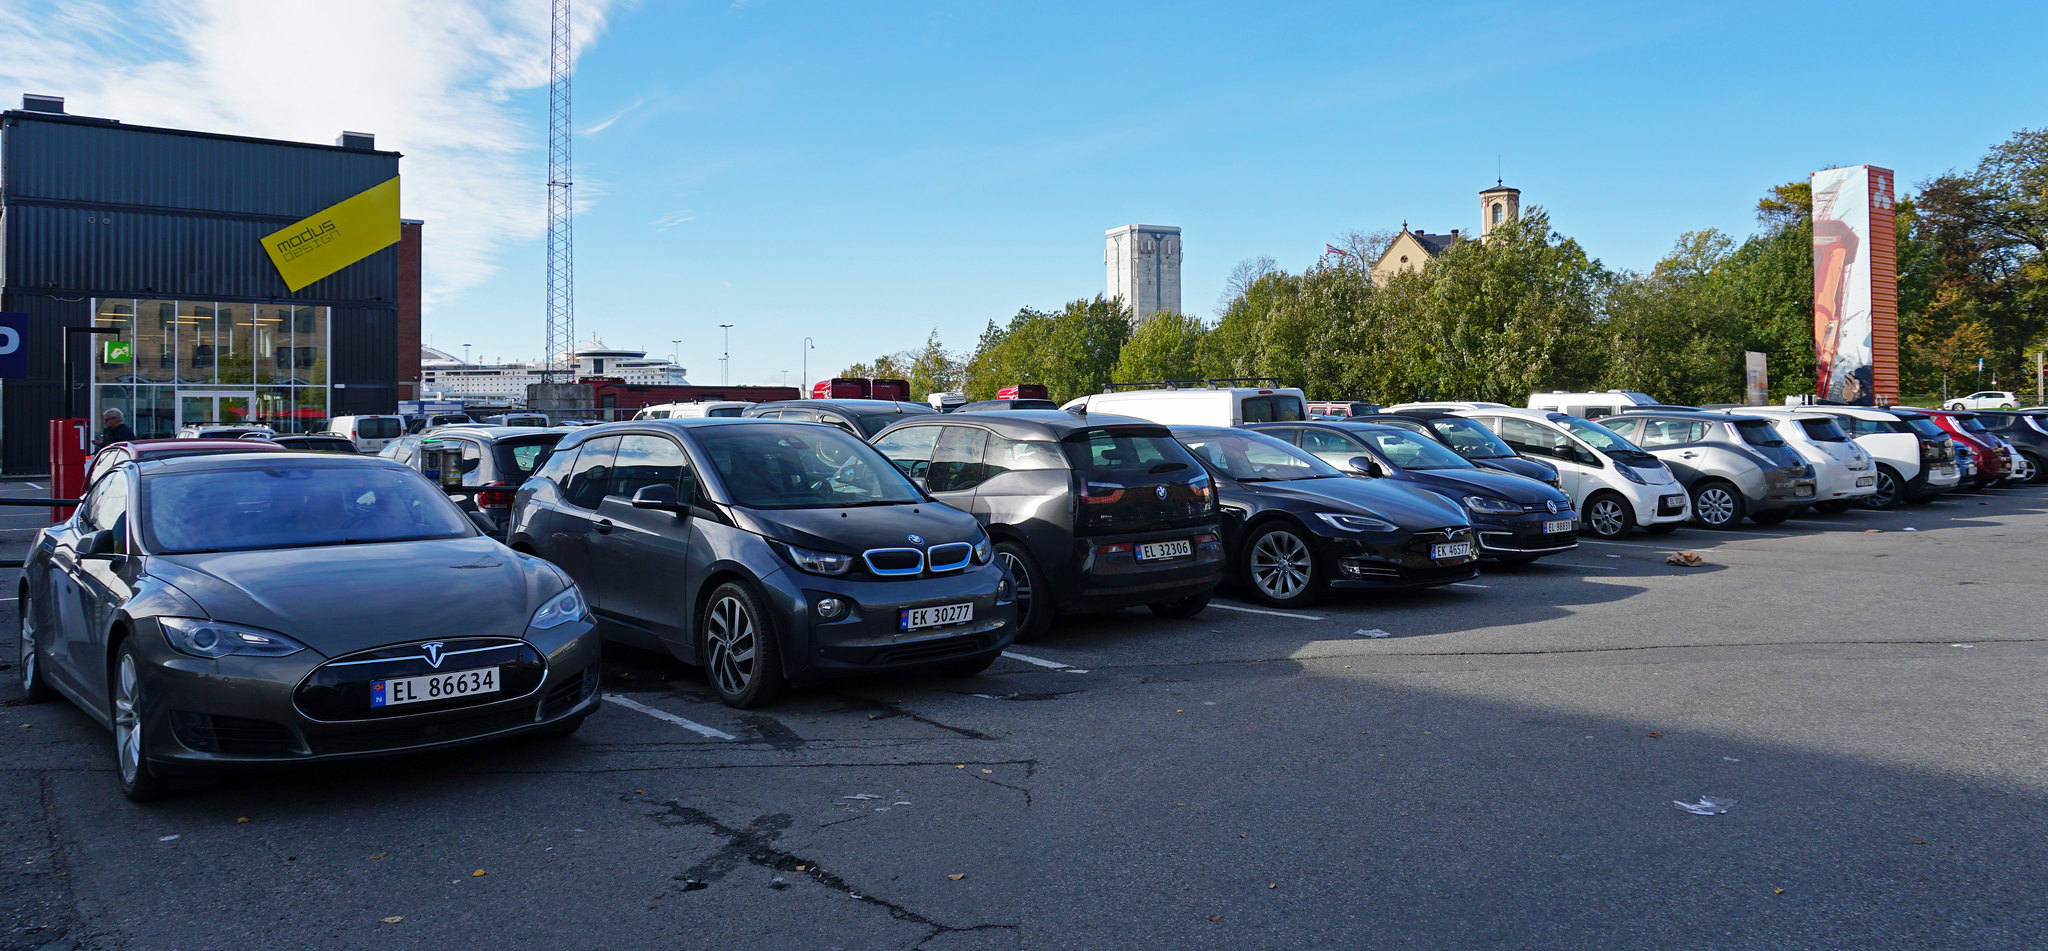 <p>A dedicated parking lot for electric vehicles in Oslo, Norway. Flickr/mariordo59</p>